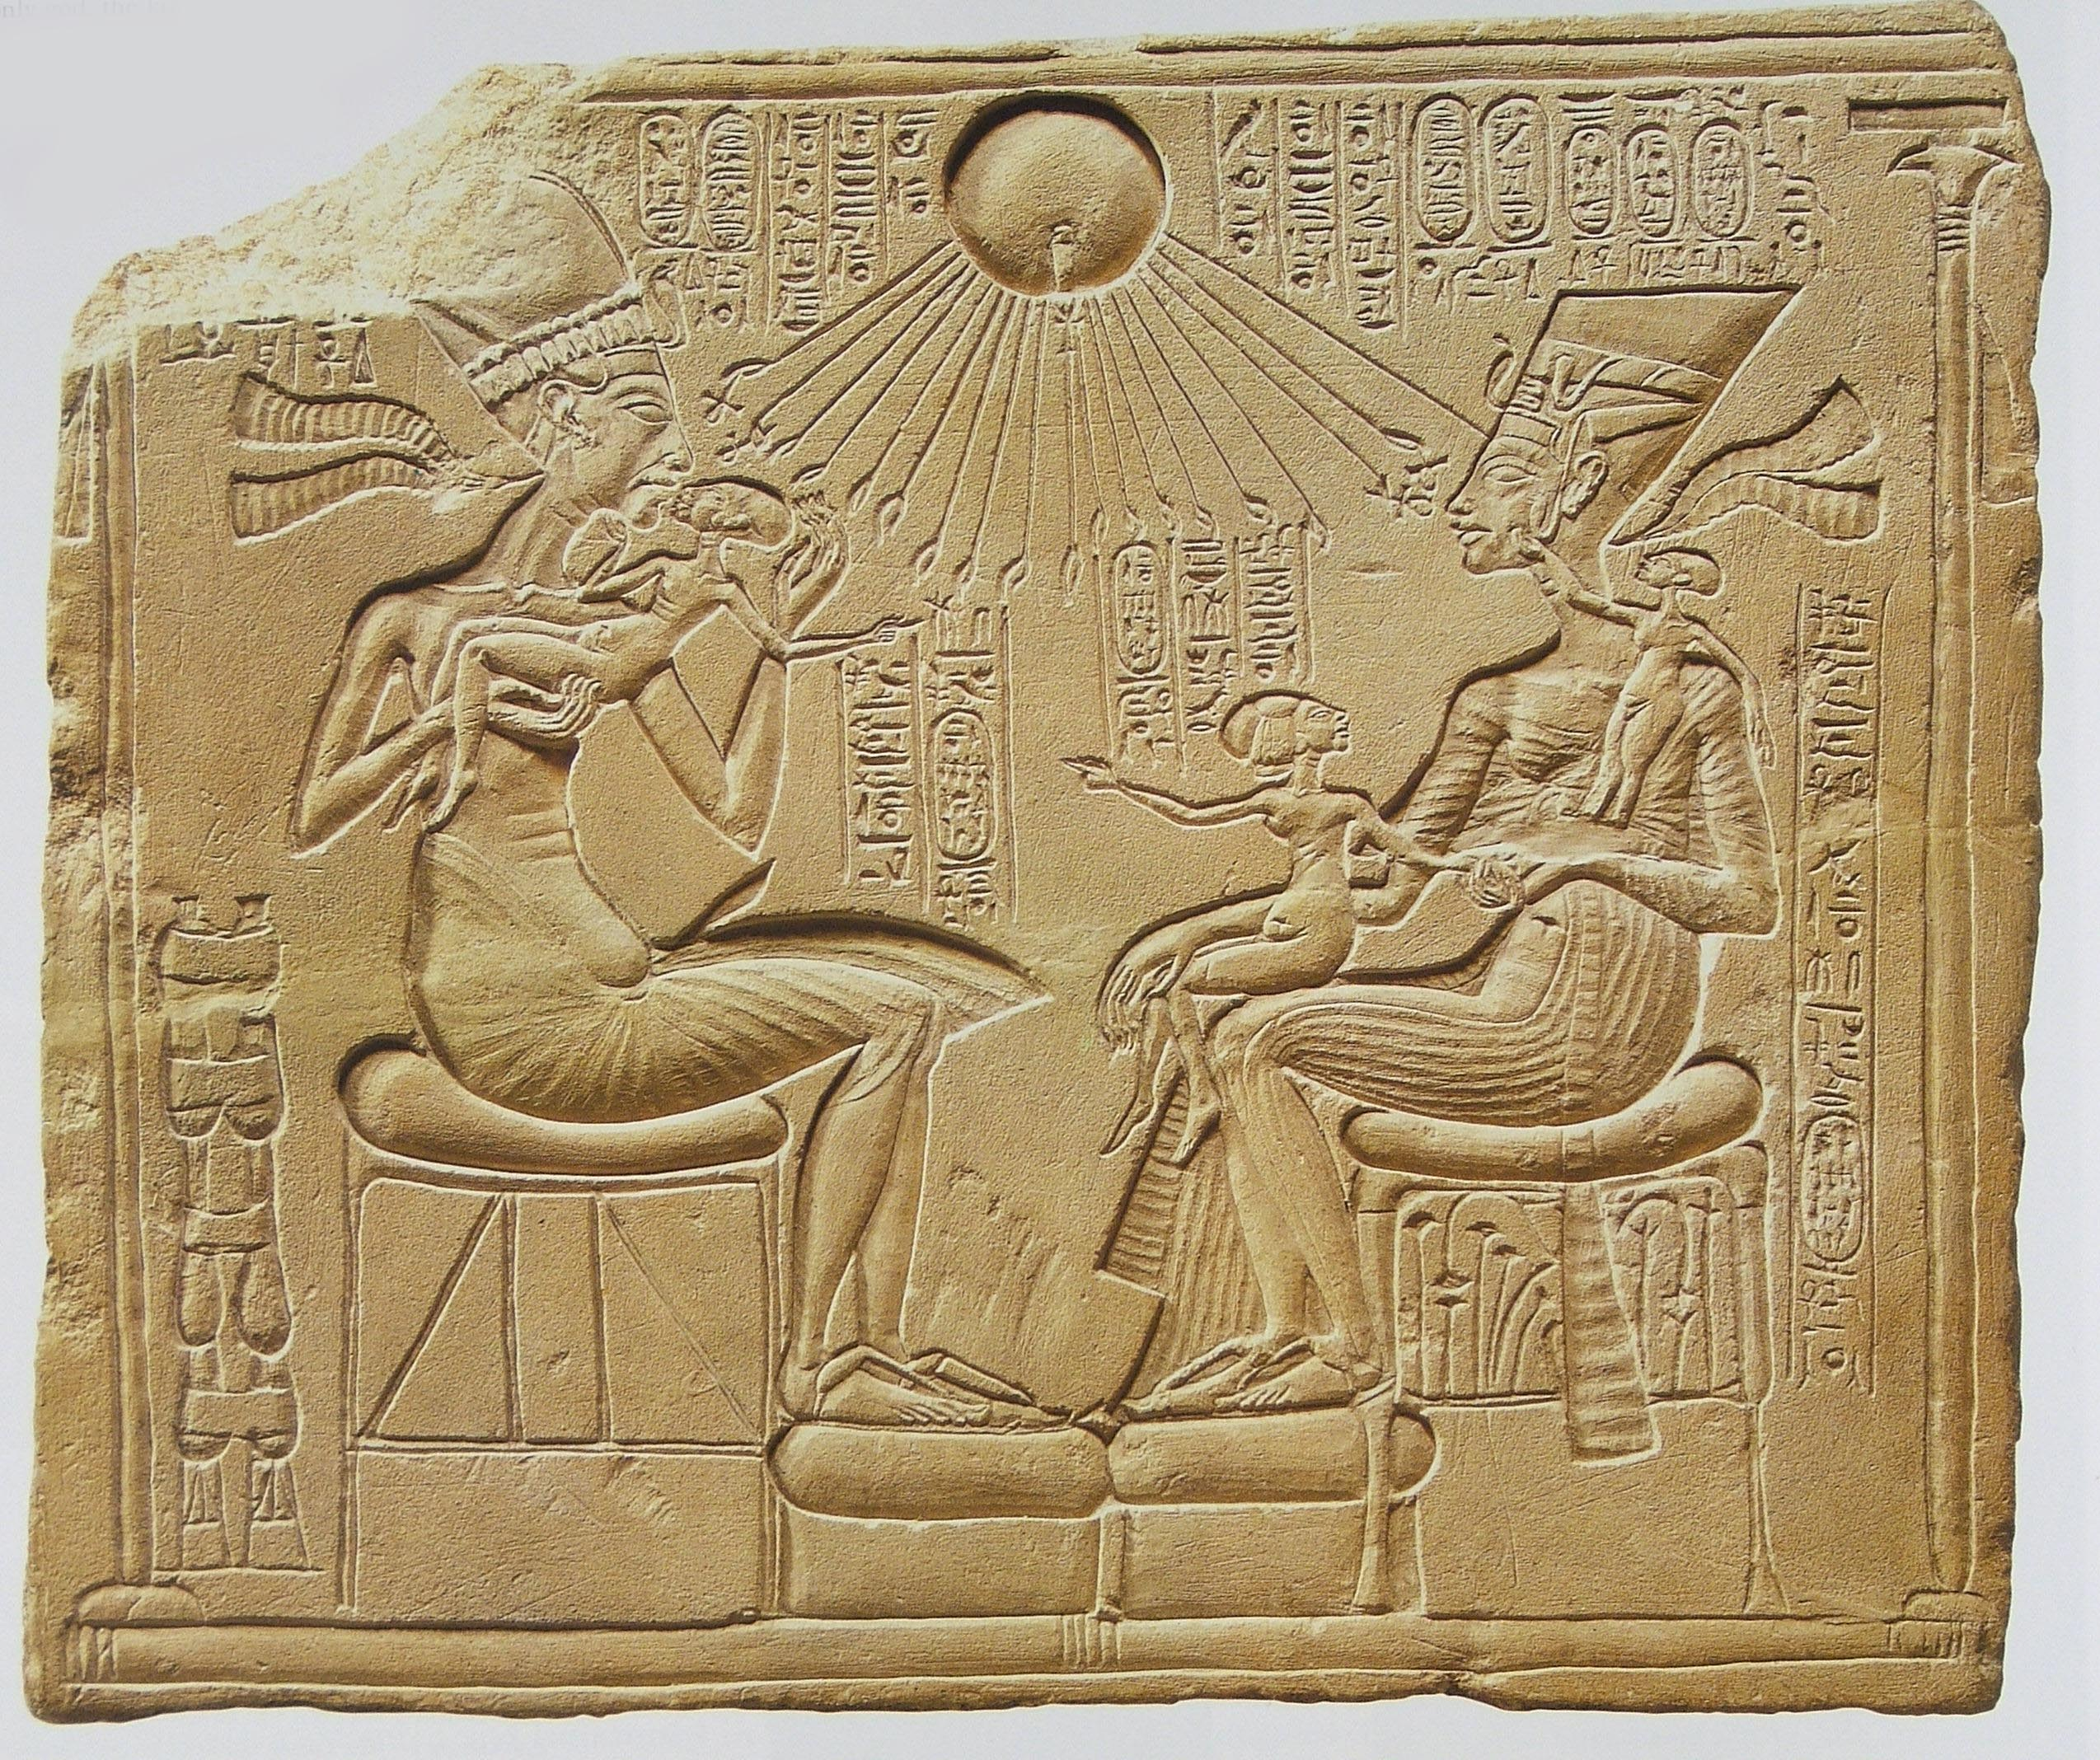 amenhotep iv and art and religion essay Check out our top free essays on akhenaten to help you write your own essay so king amenhotep iv changed his name to though like all art within a certain.